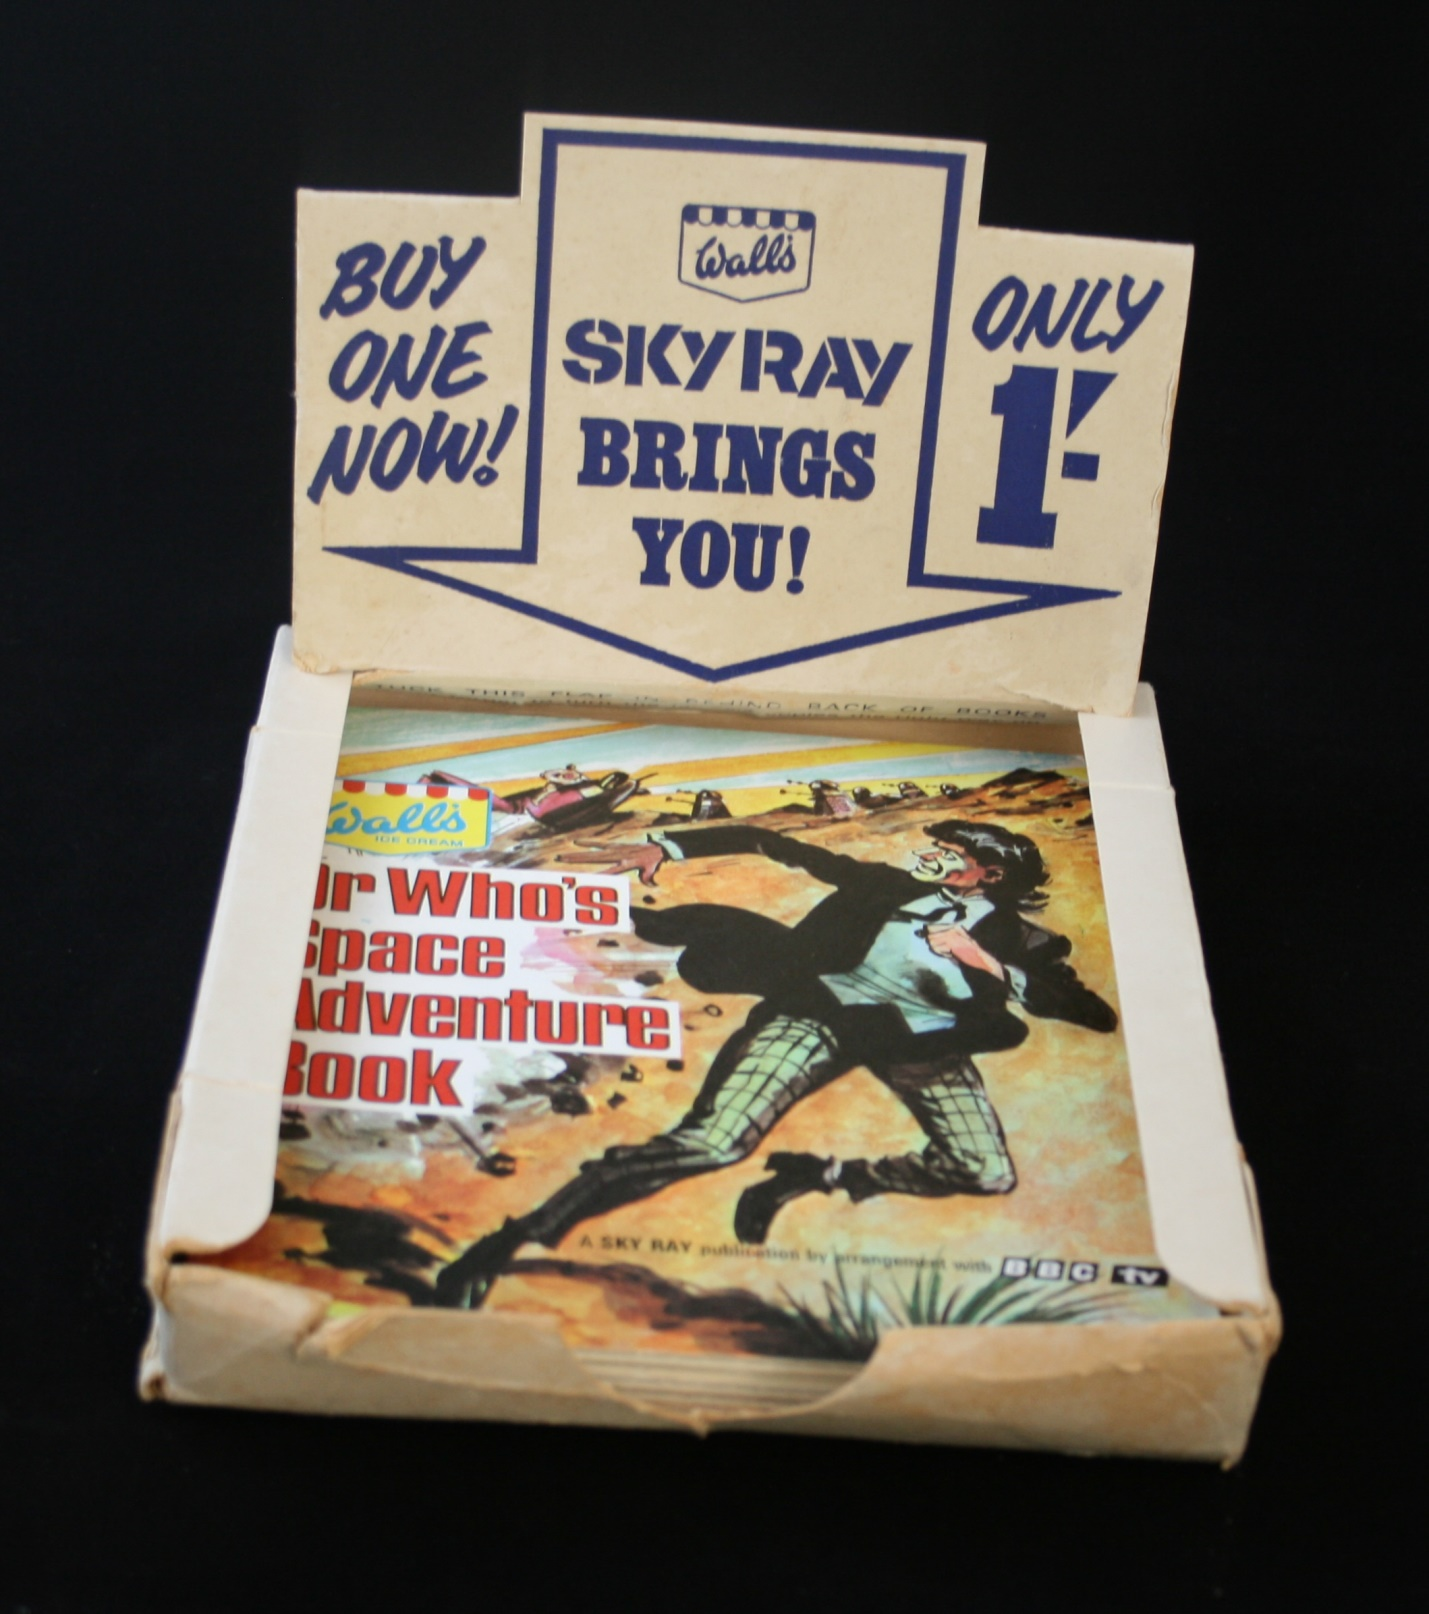 Point-of-sale display box for the Wall's Sky Ray Dr. Who's Space Adventure Book